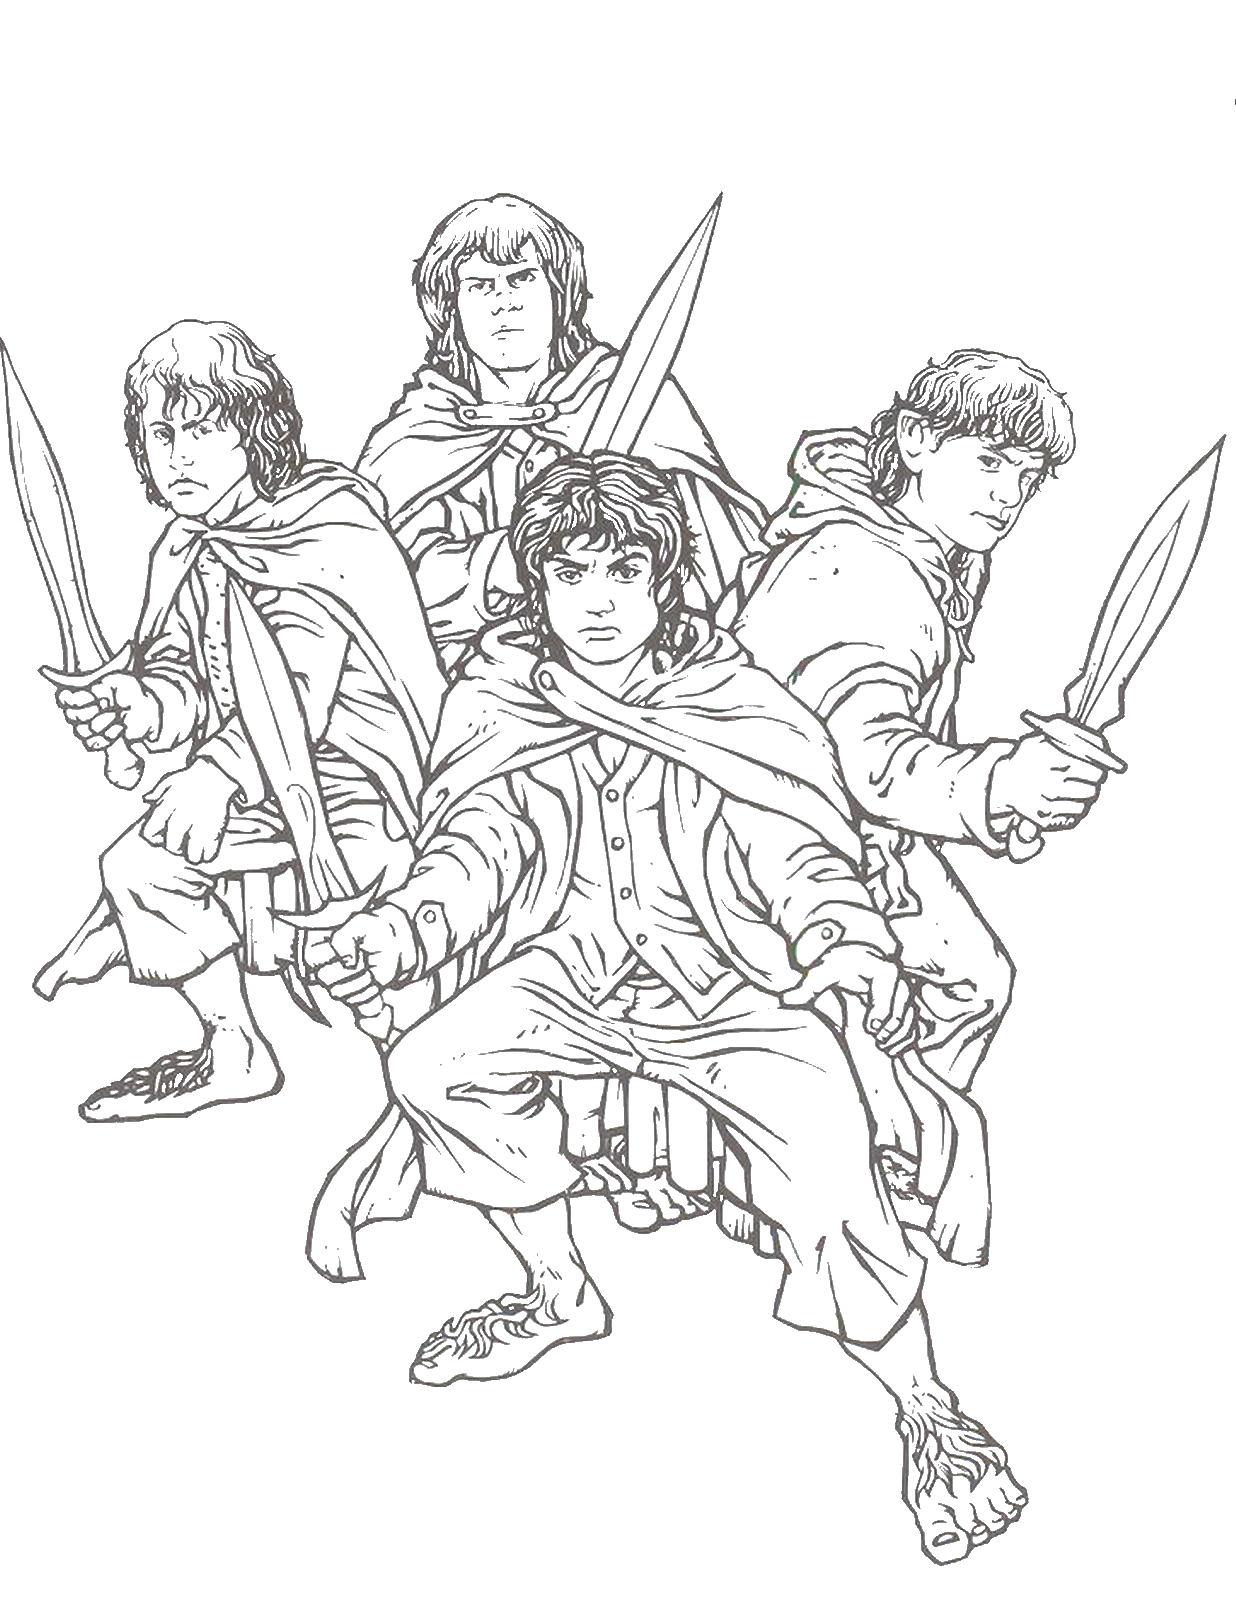 Lord Of the Rings Coloring Pages to Print Lord Of the Rings Coloring Pages